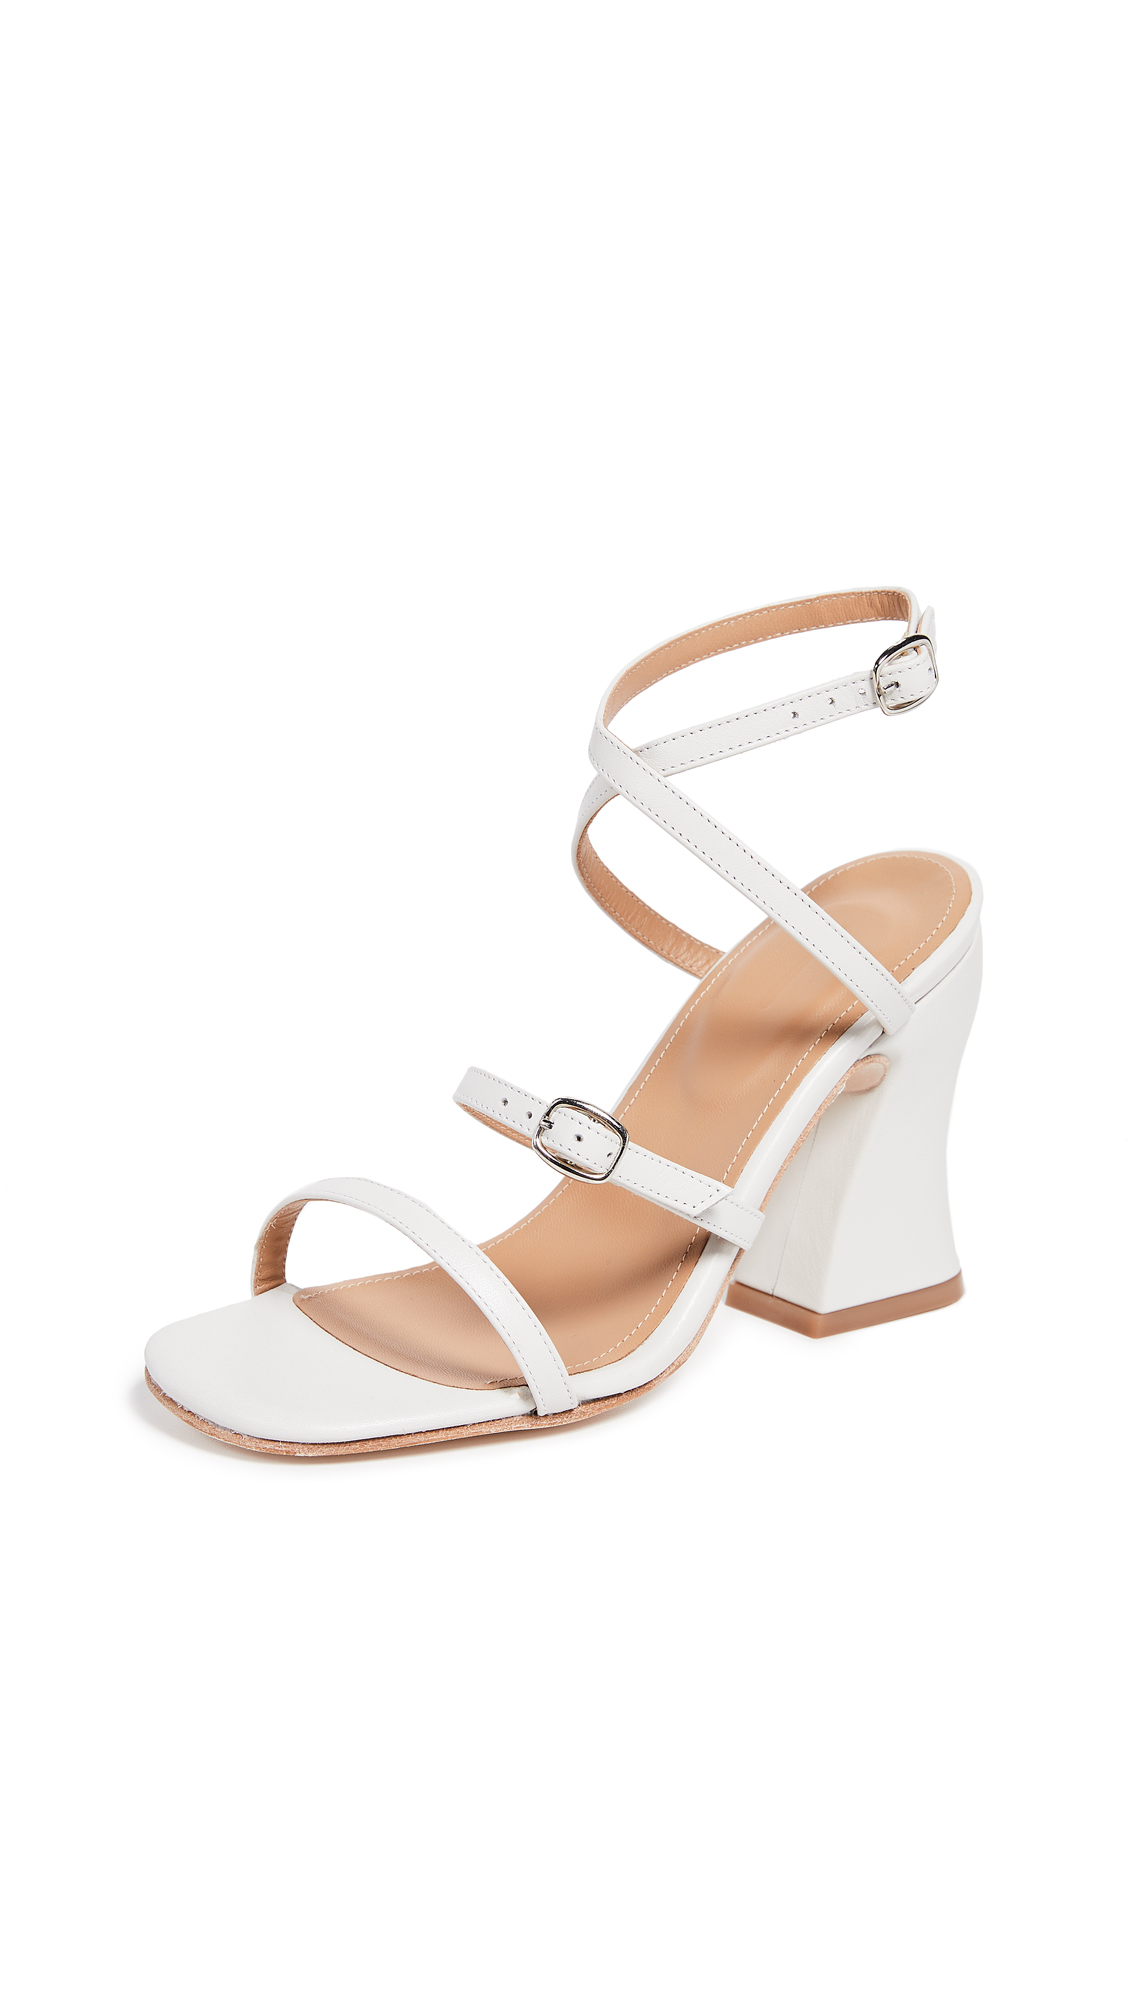 The Palatines Dalia Curved Heel Sandals - White